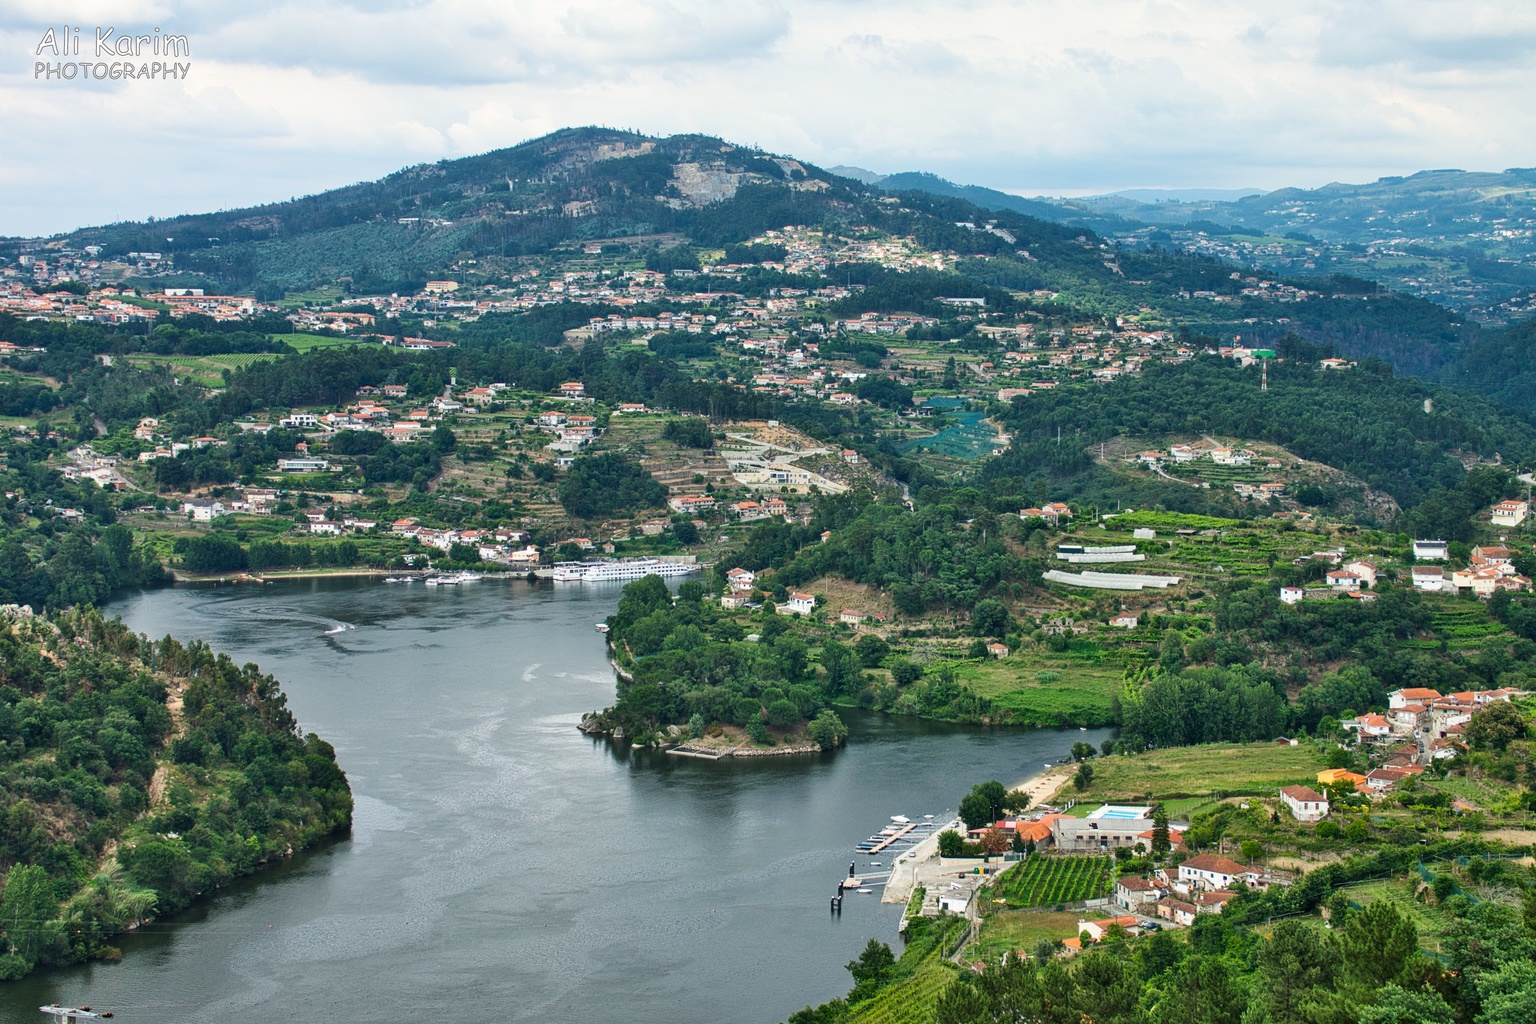 Porto Wine growing region of Duoro river valley